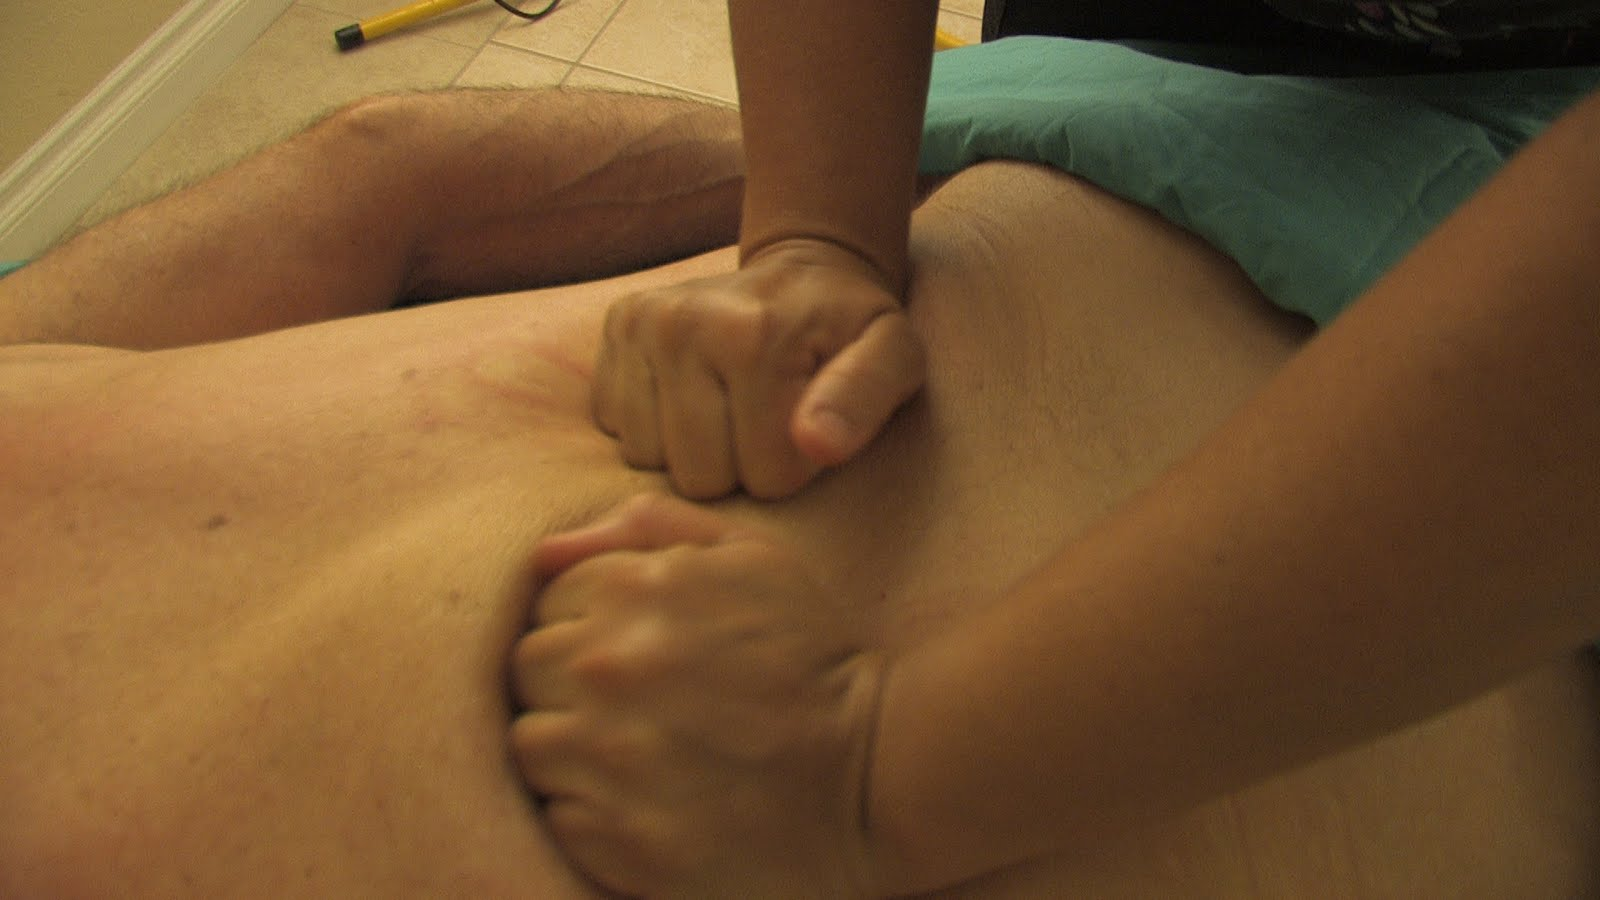 Erotic Asian Massage Videos